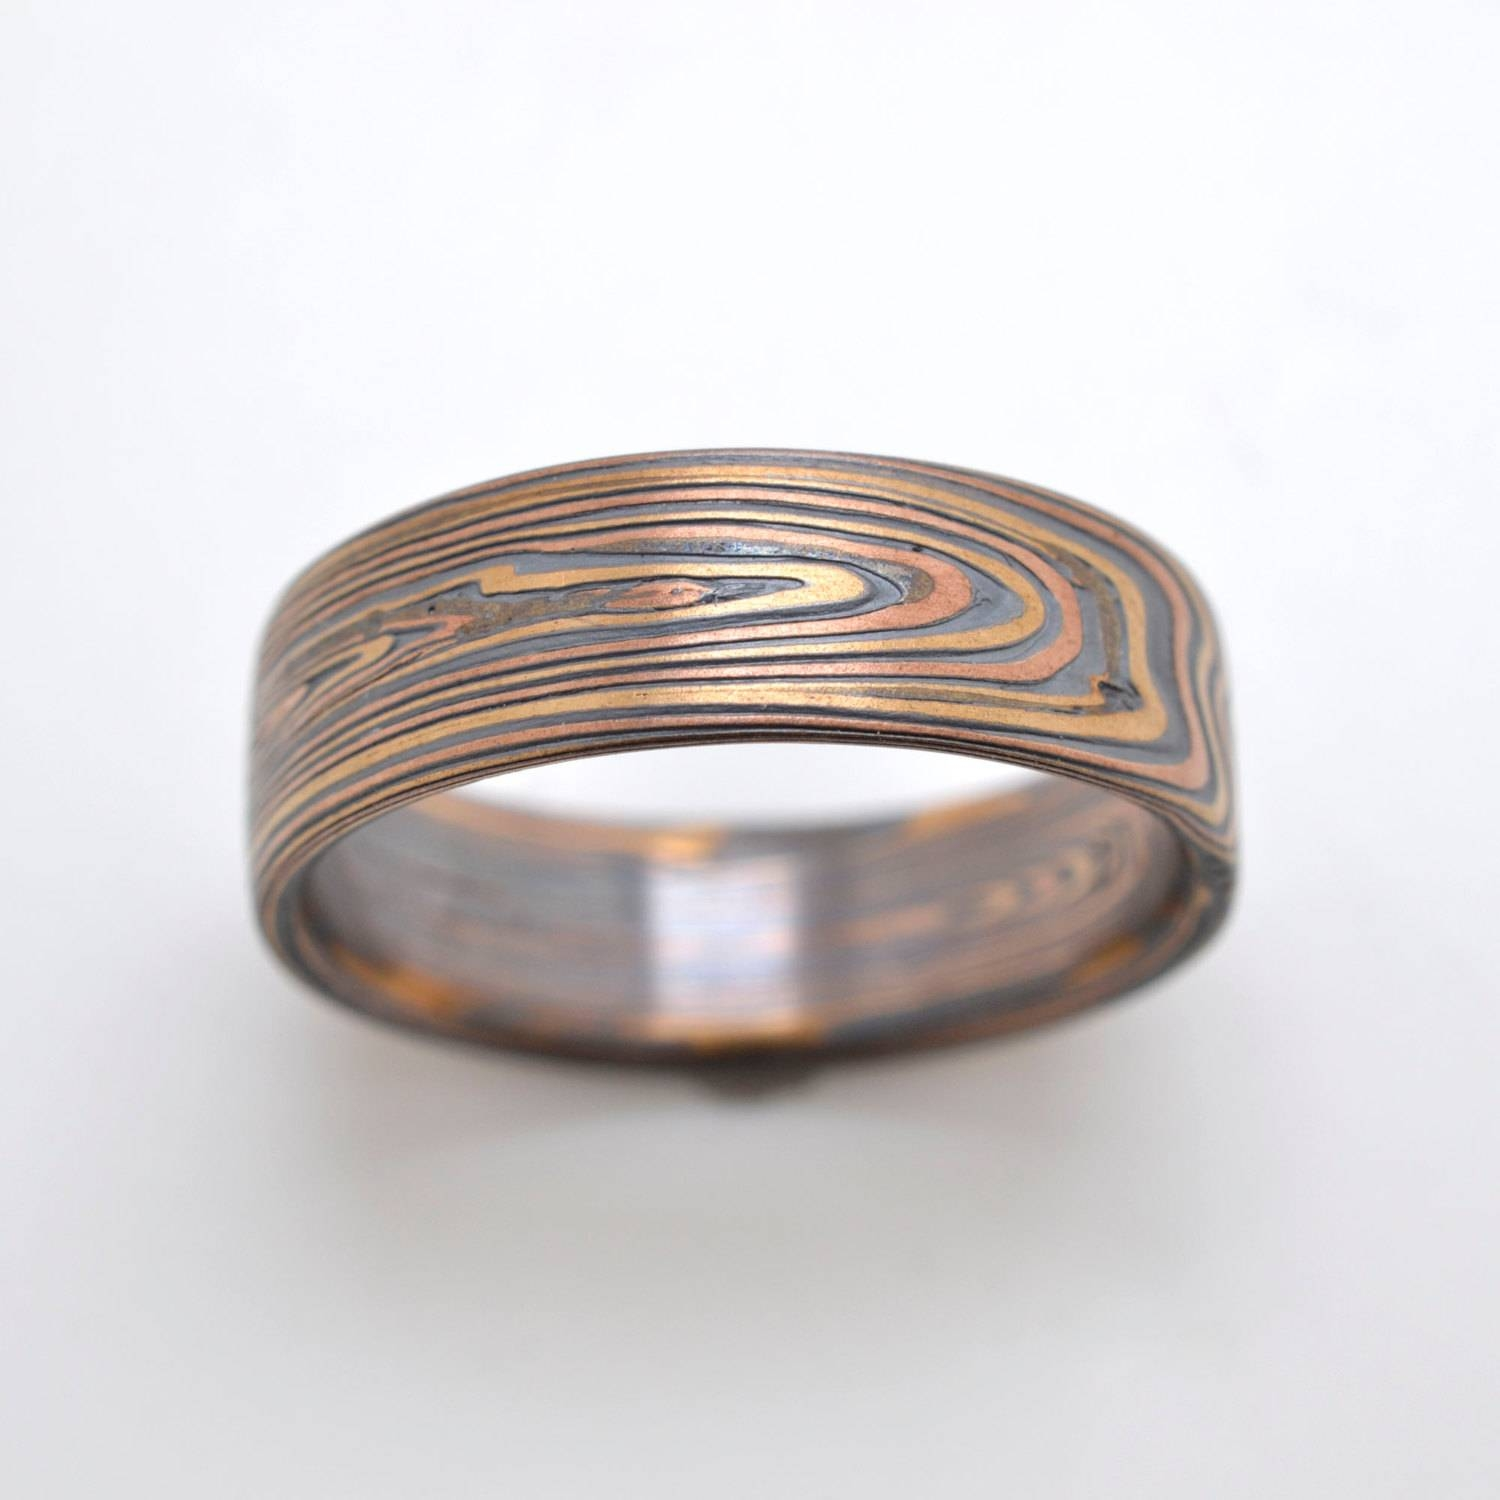 Mokume Vortex Band In Oxidized Flame Intended For Mokume Wedding Bands (View 12 of 15)